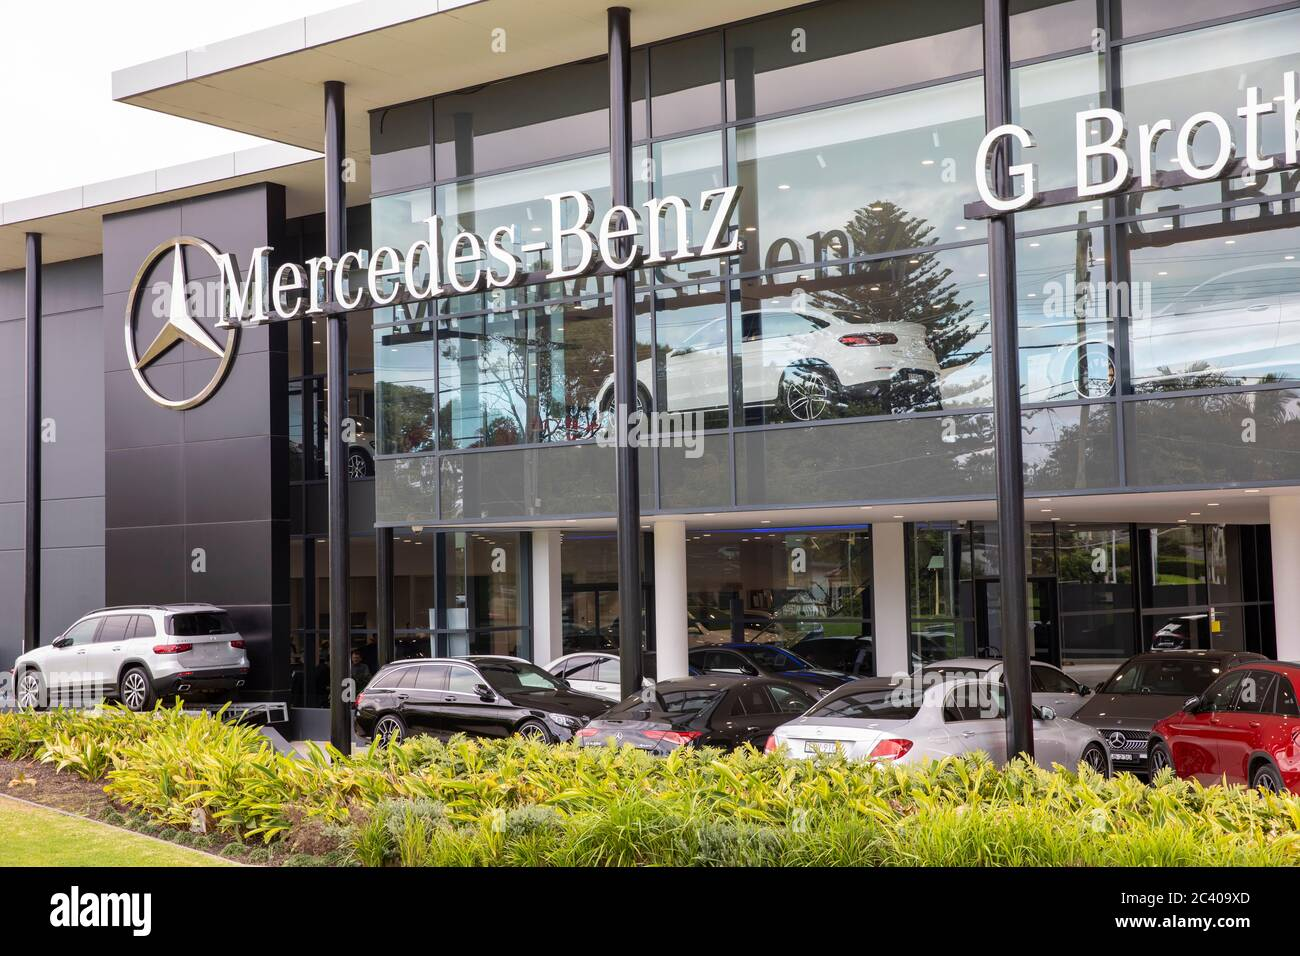 Mercedes Benz new car showroom in Sydney selling quality German cars,Australia Stock Photo